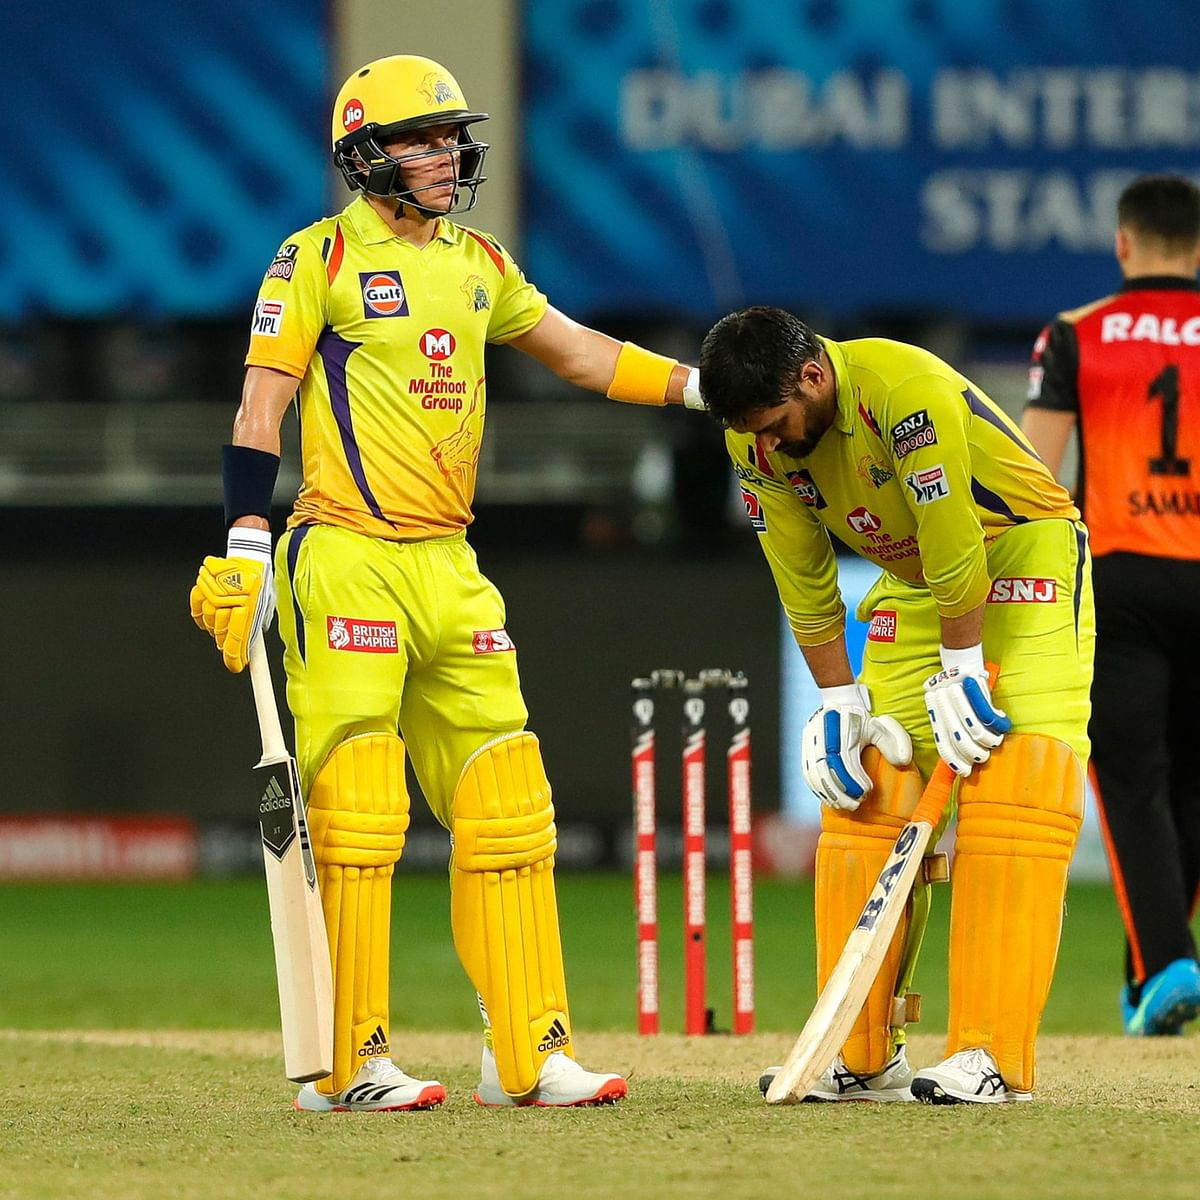 Chennai Super Kings: Here's the complete squad after IPL 2021 auction